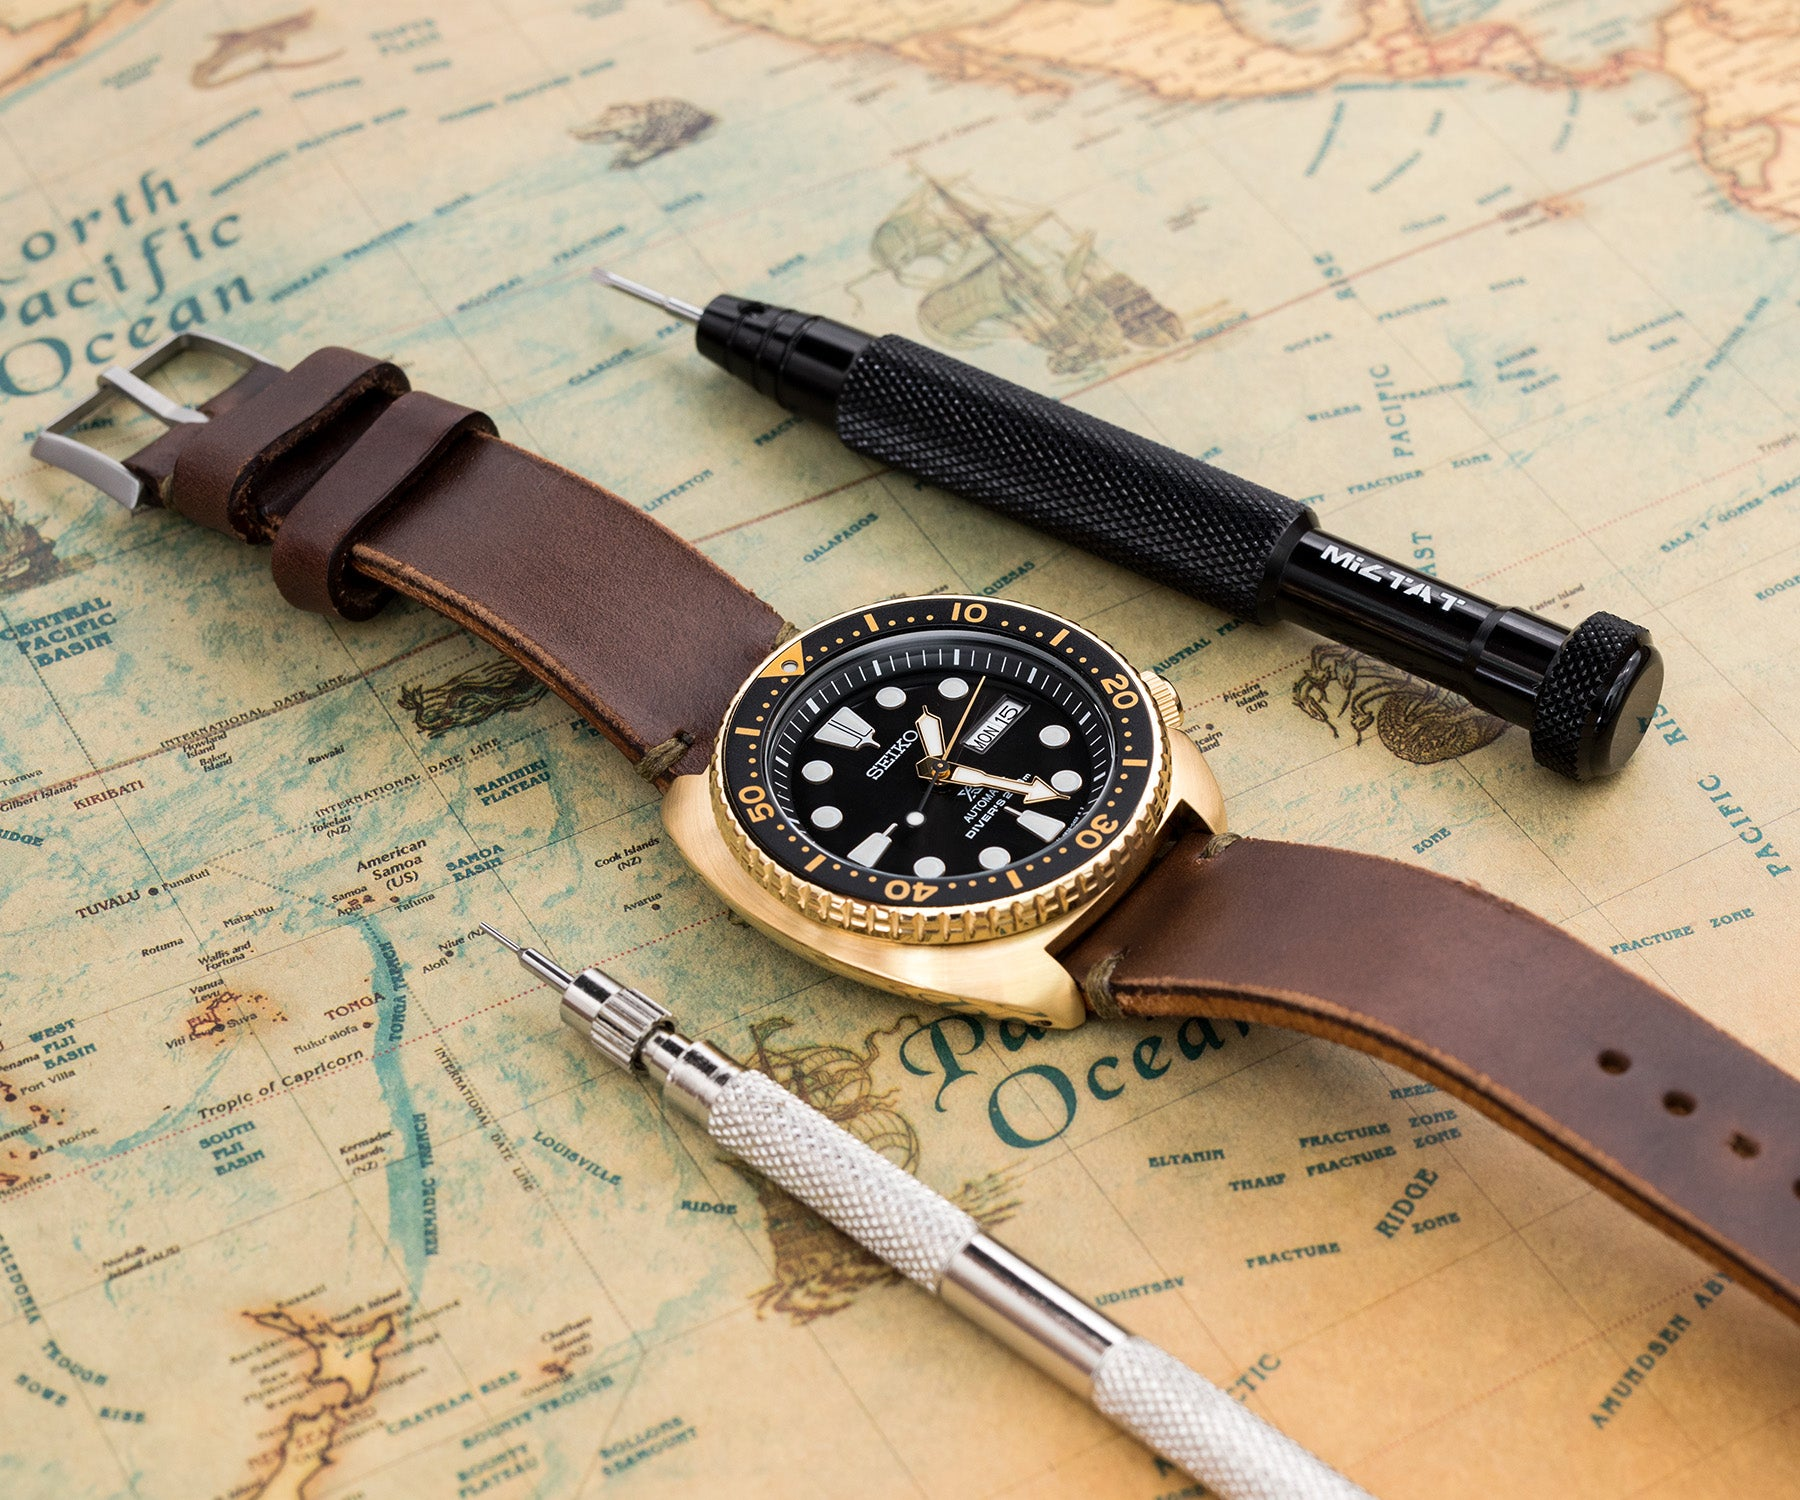 Horween Chromexcel watchstrap, Seiko SRPC44 Gold Turtle